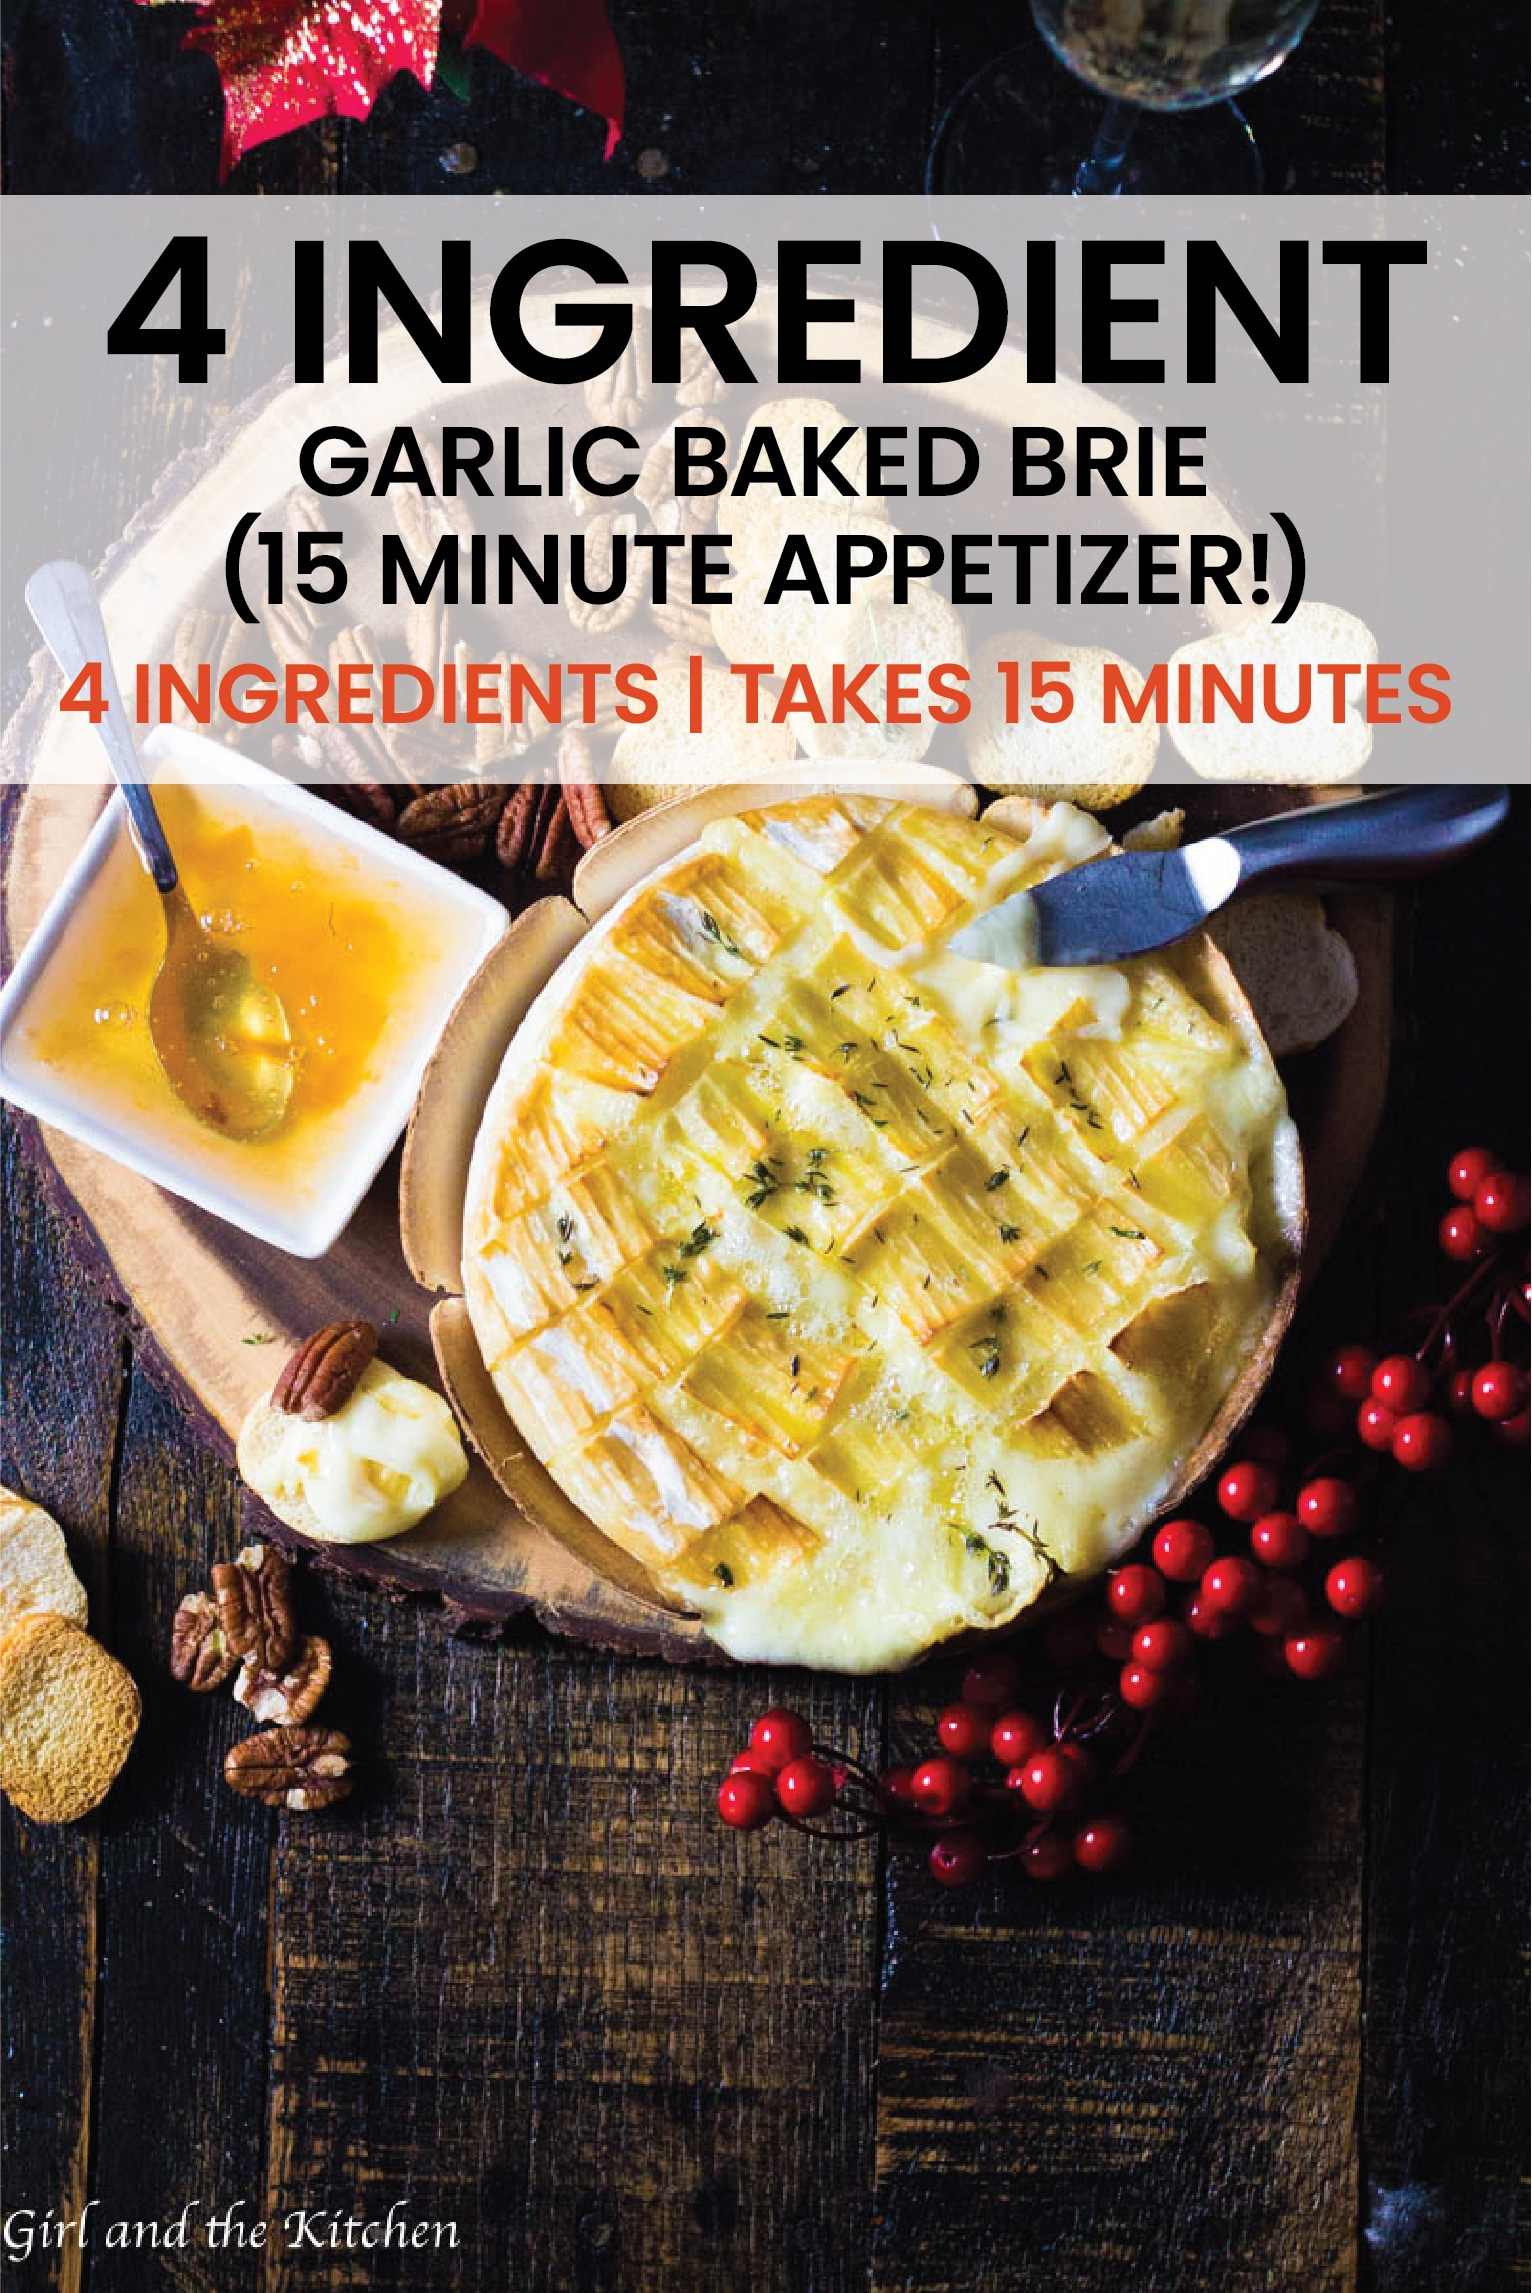 This gooey garlic baked brie has only 4 ingredients and takes 15 minutes to prepare! #brie #quickbrie